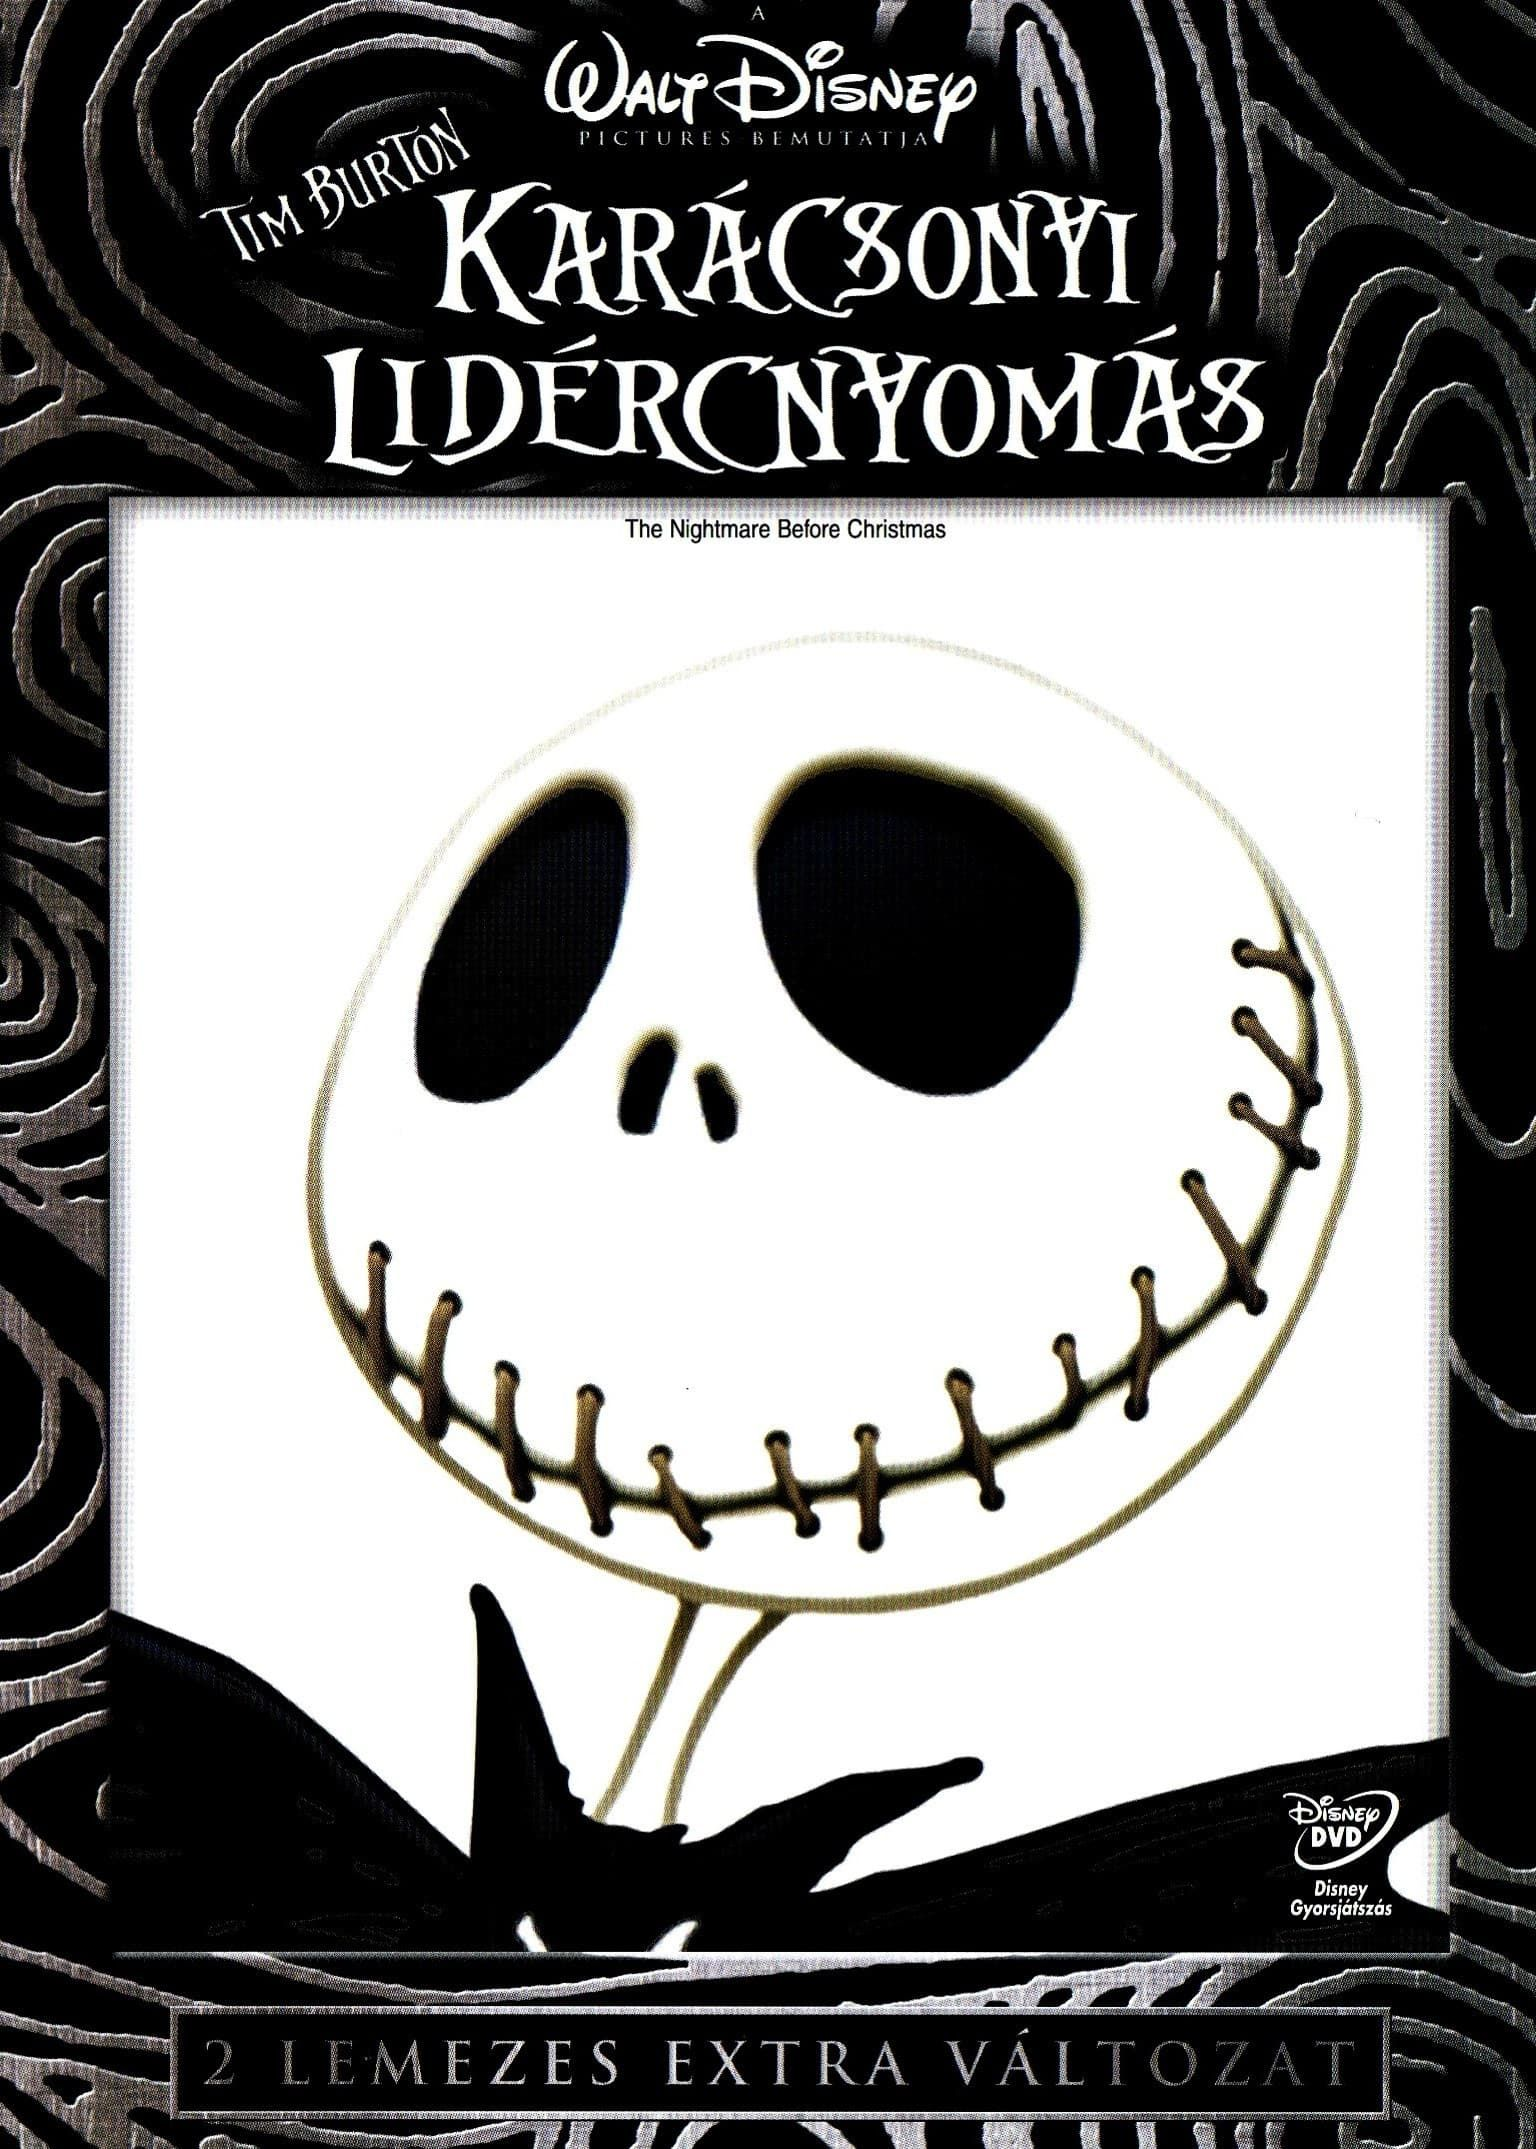 The Nightmare Before Christmas Pelicula Completa - 1993… | Loving ...